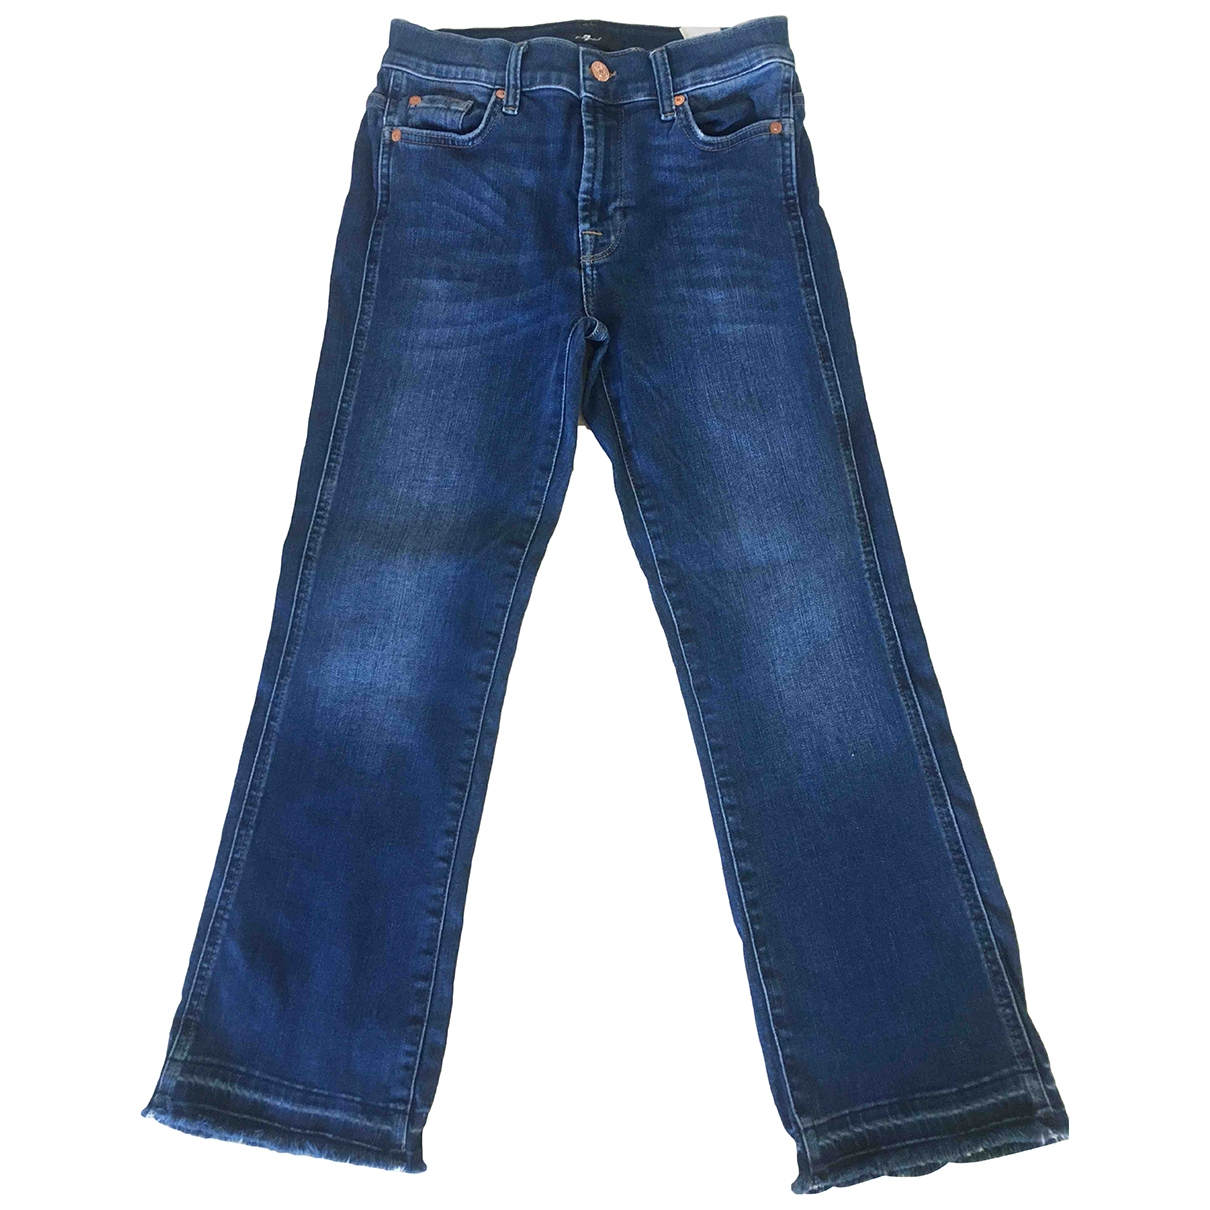 7 For All Mankind \N Blue Denim - Jeans Jeans for Women 26 US